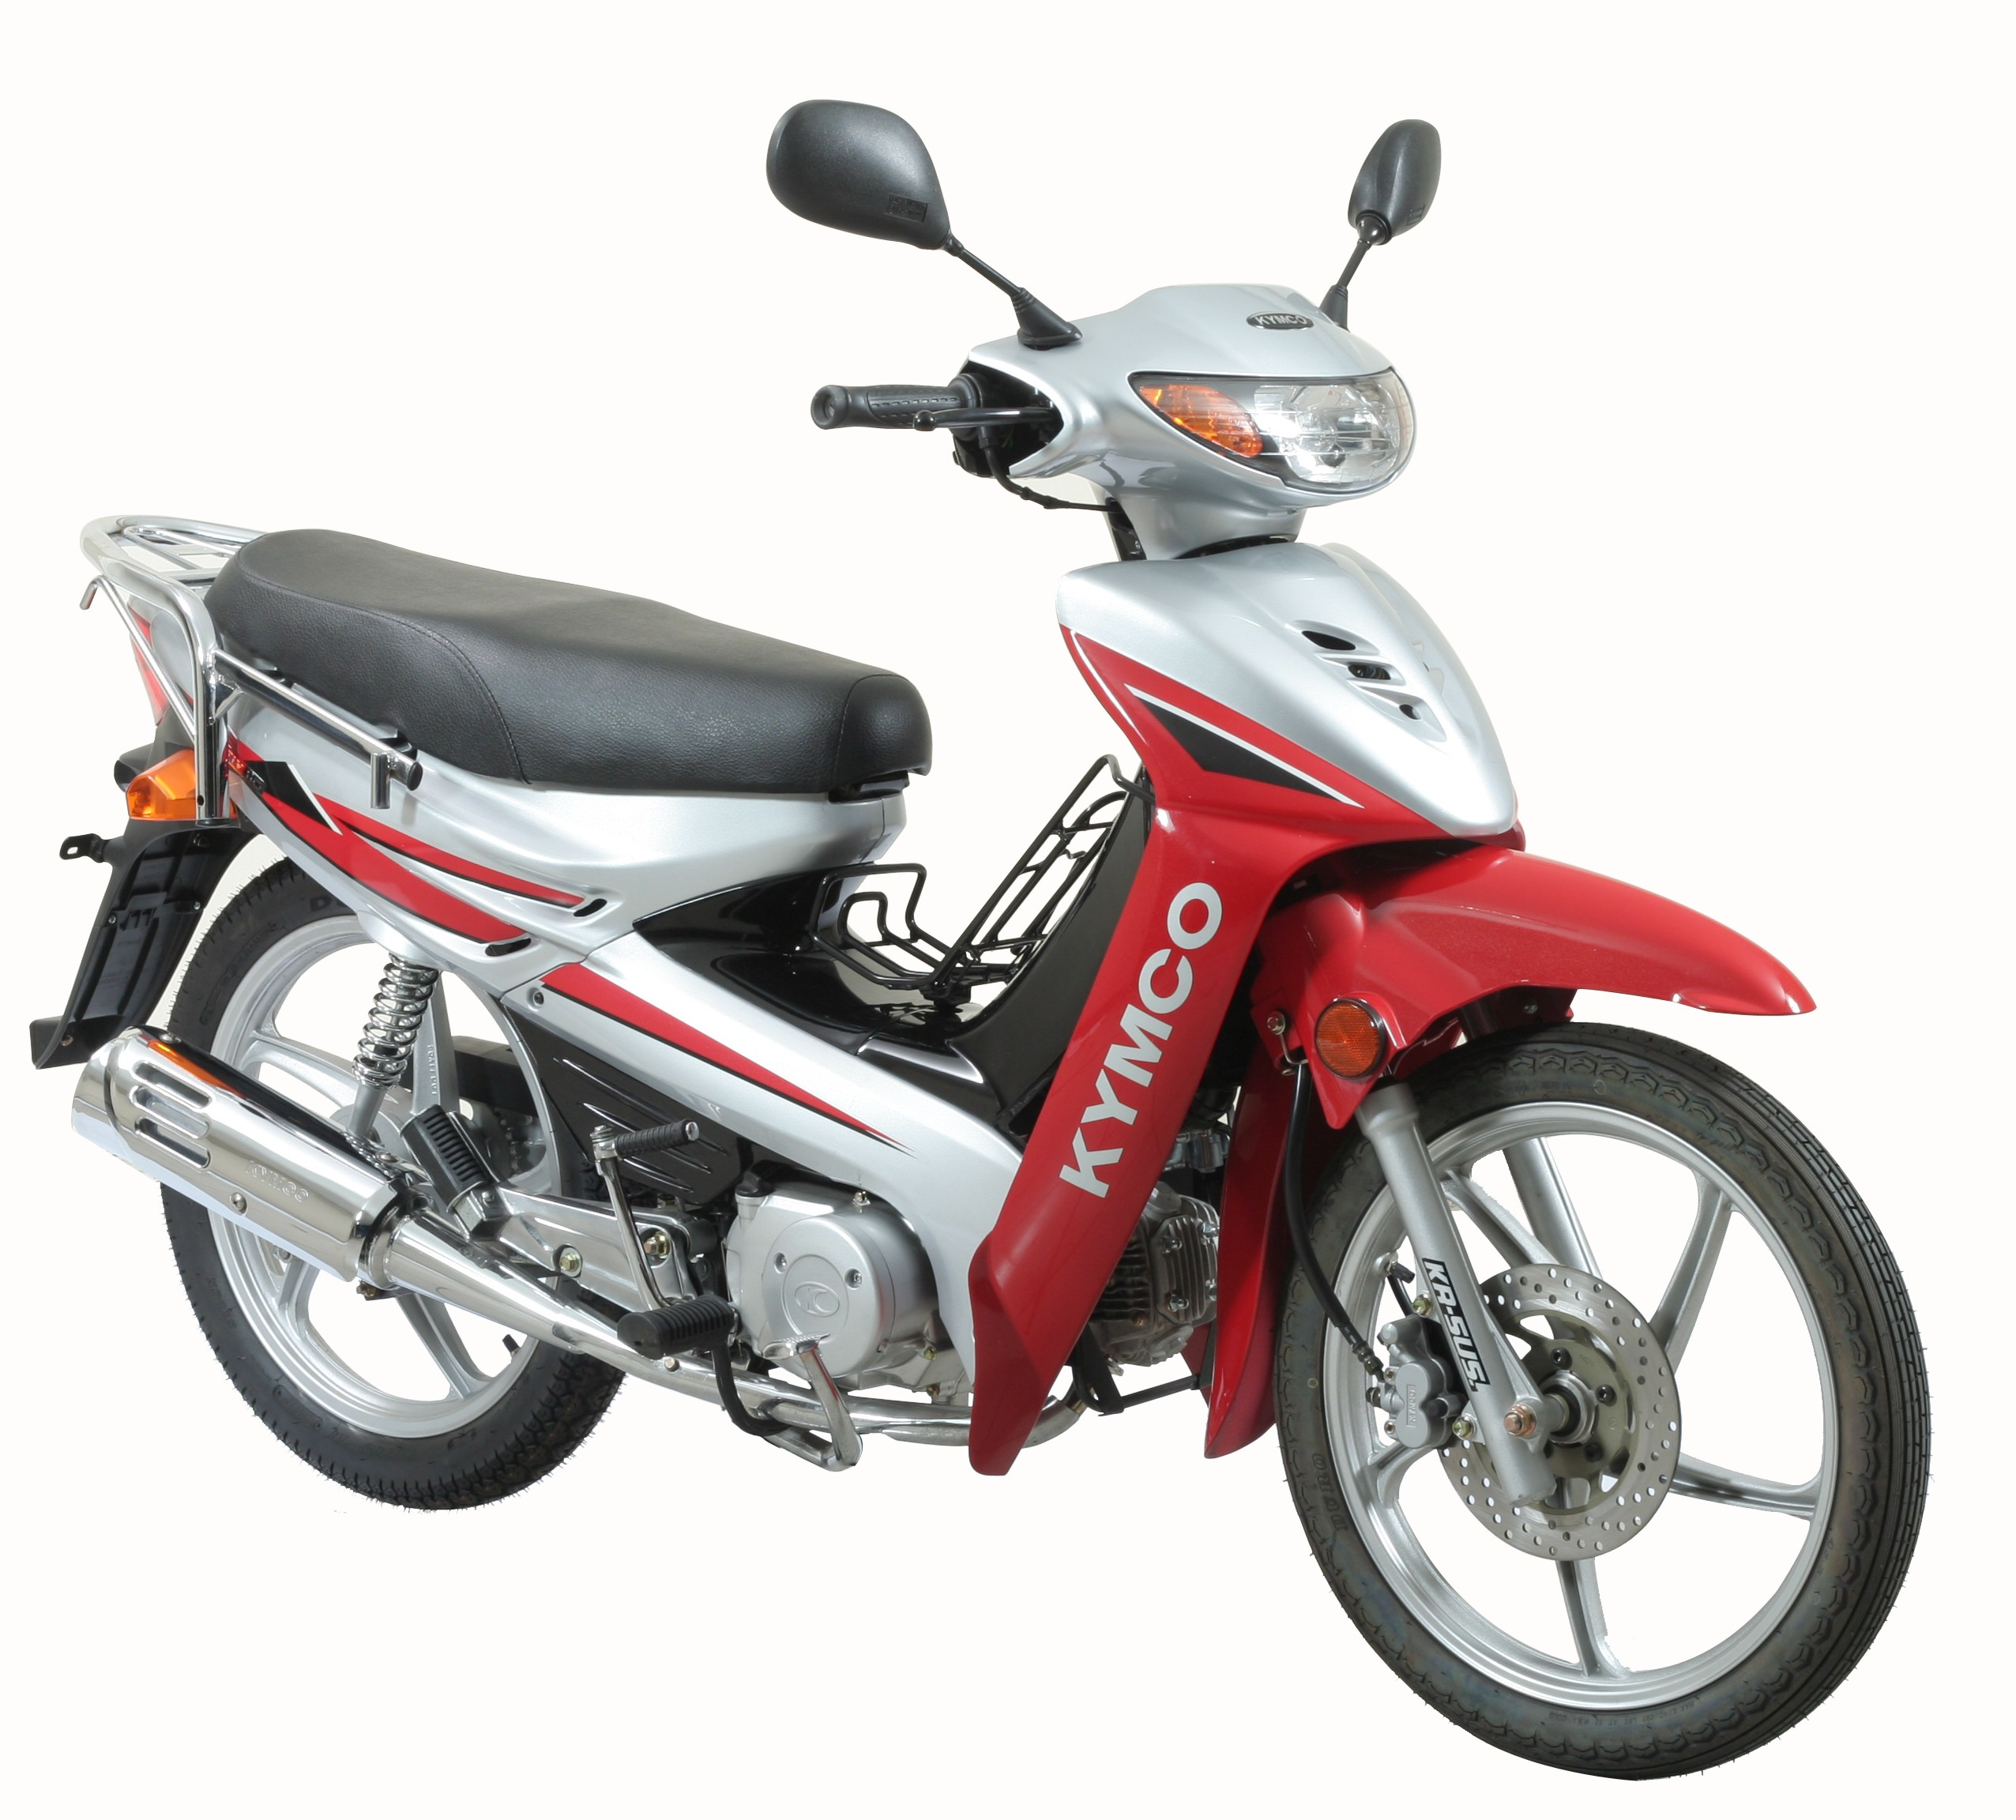 kymco activ 125-pic. 3